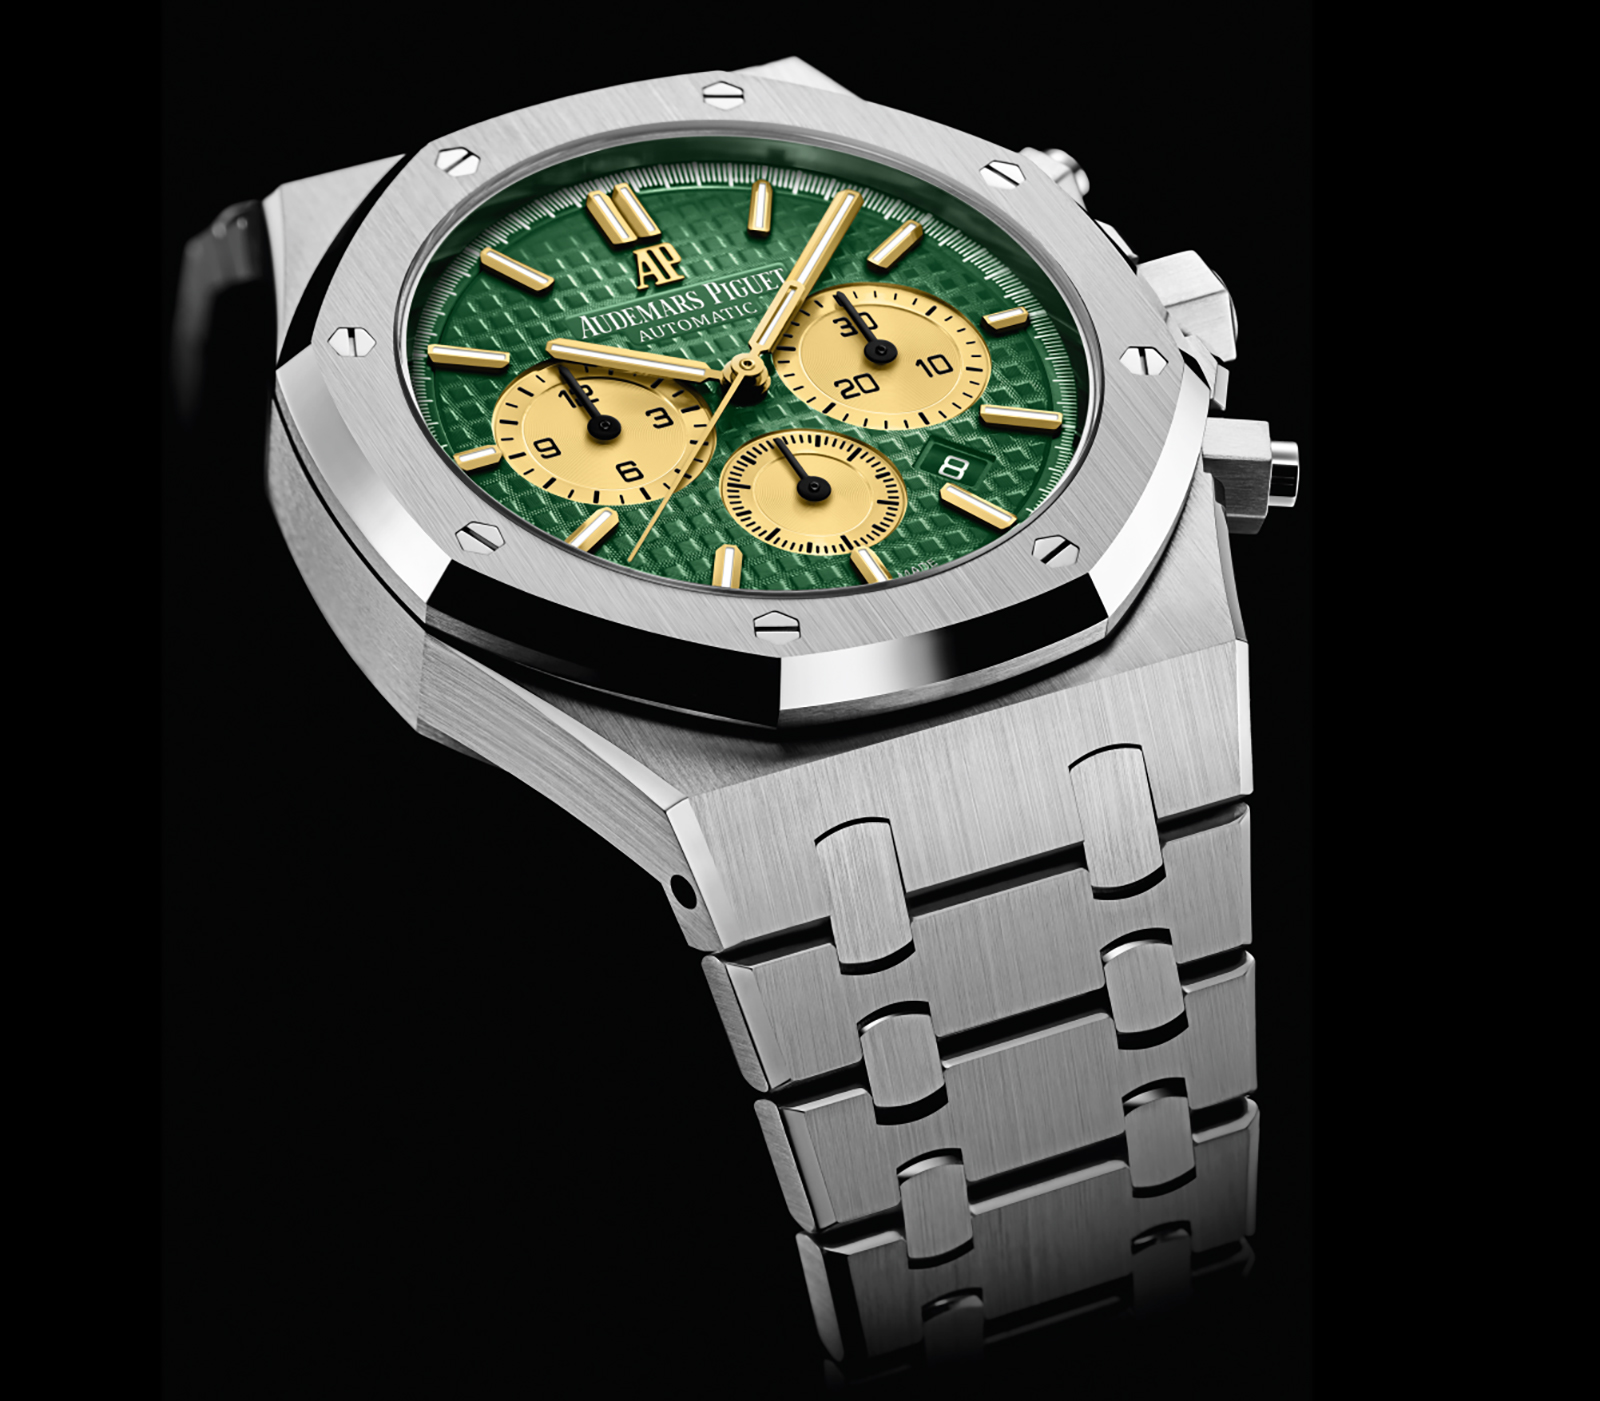 Audemars Piguet Royal Oak Self-winding Chrongraph The Hour Glass 4